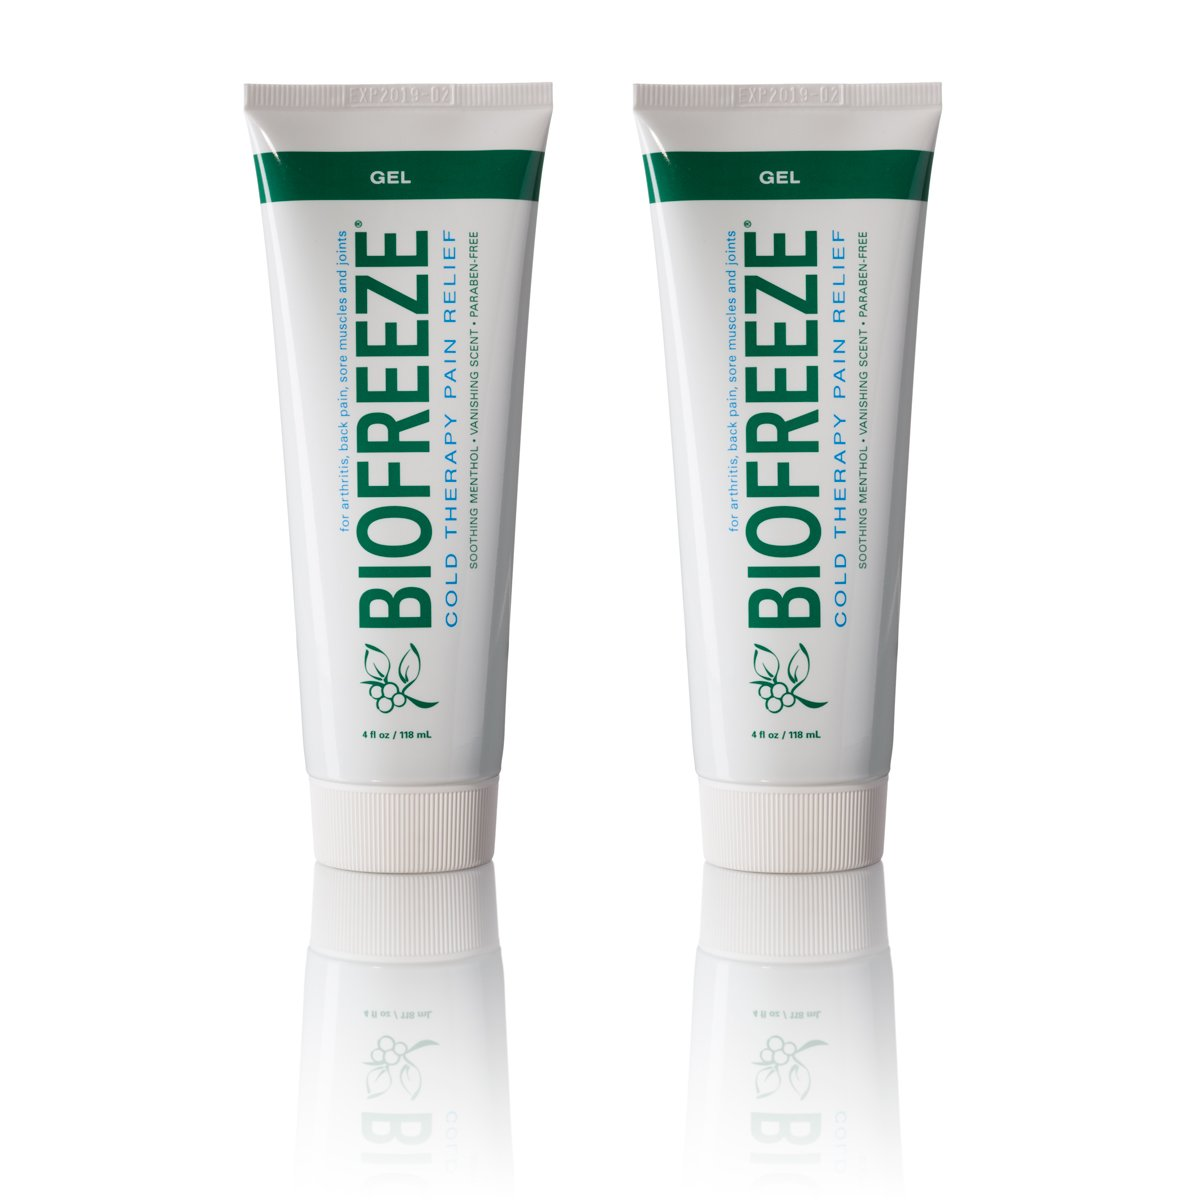 Biofreeze Pain Relief Gel for Arthritis, 4 oz. Cold Topical Analgesic, Fast Acting Cooling Pain Reliever for Muscle, Joint, Back Pain, Works Like Ice Pack, Original Green Formula, 2 pack, 4% Menthol